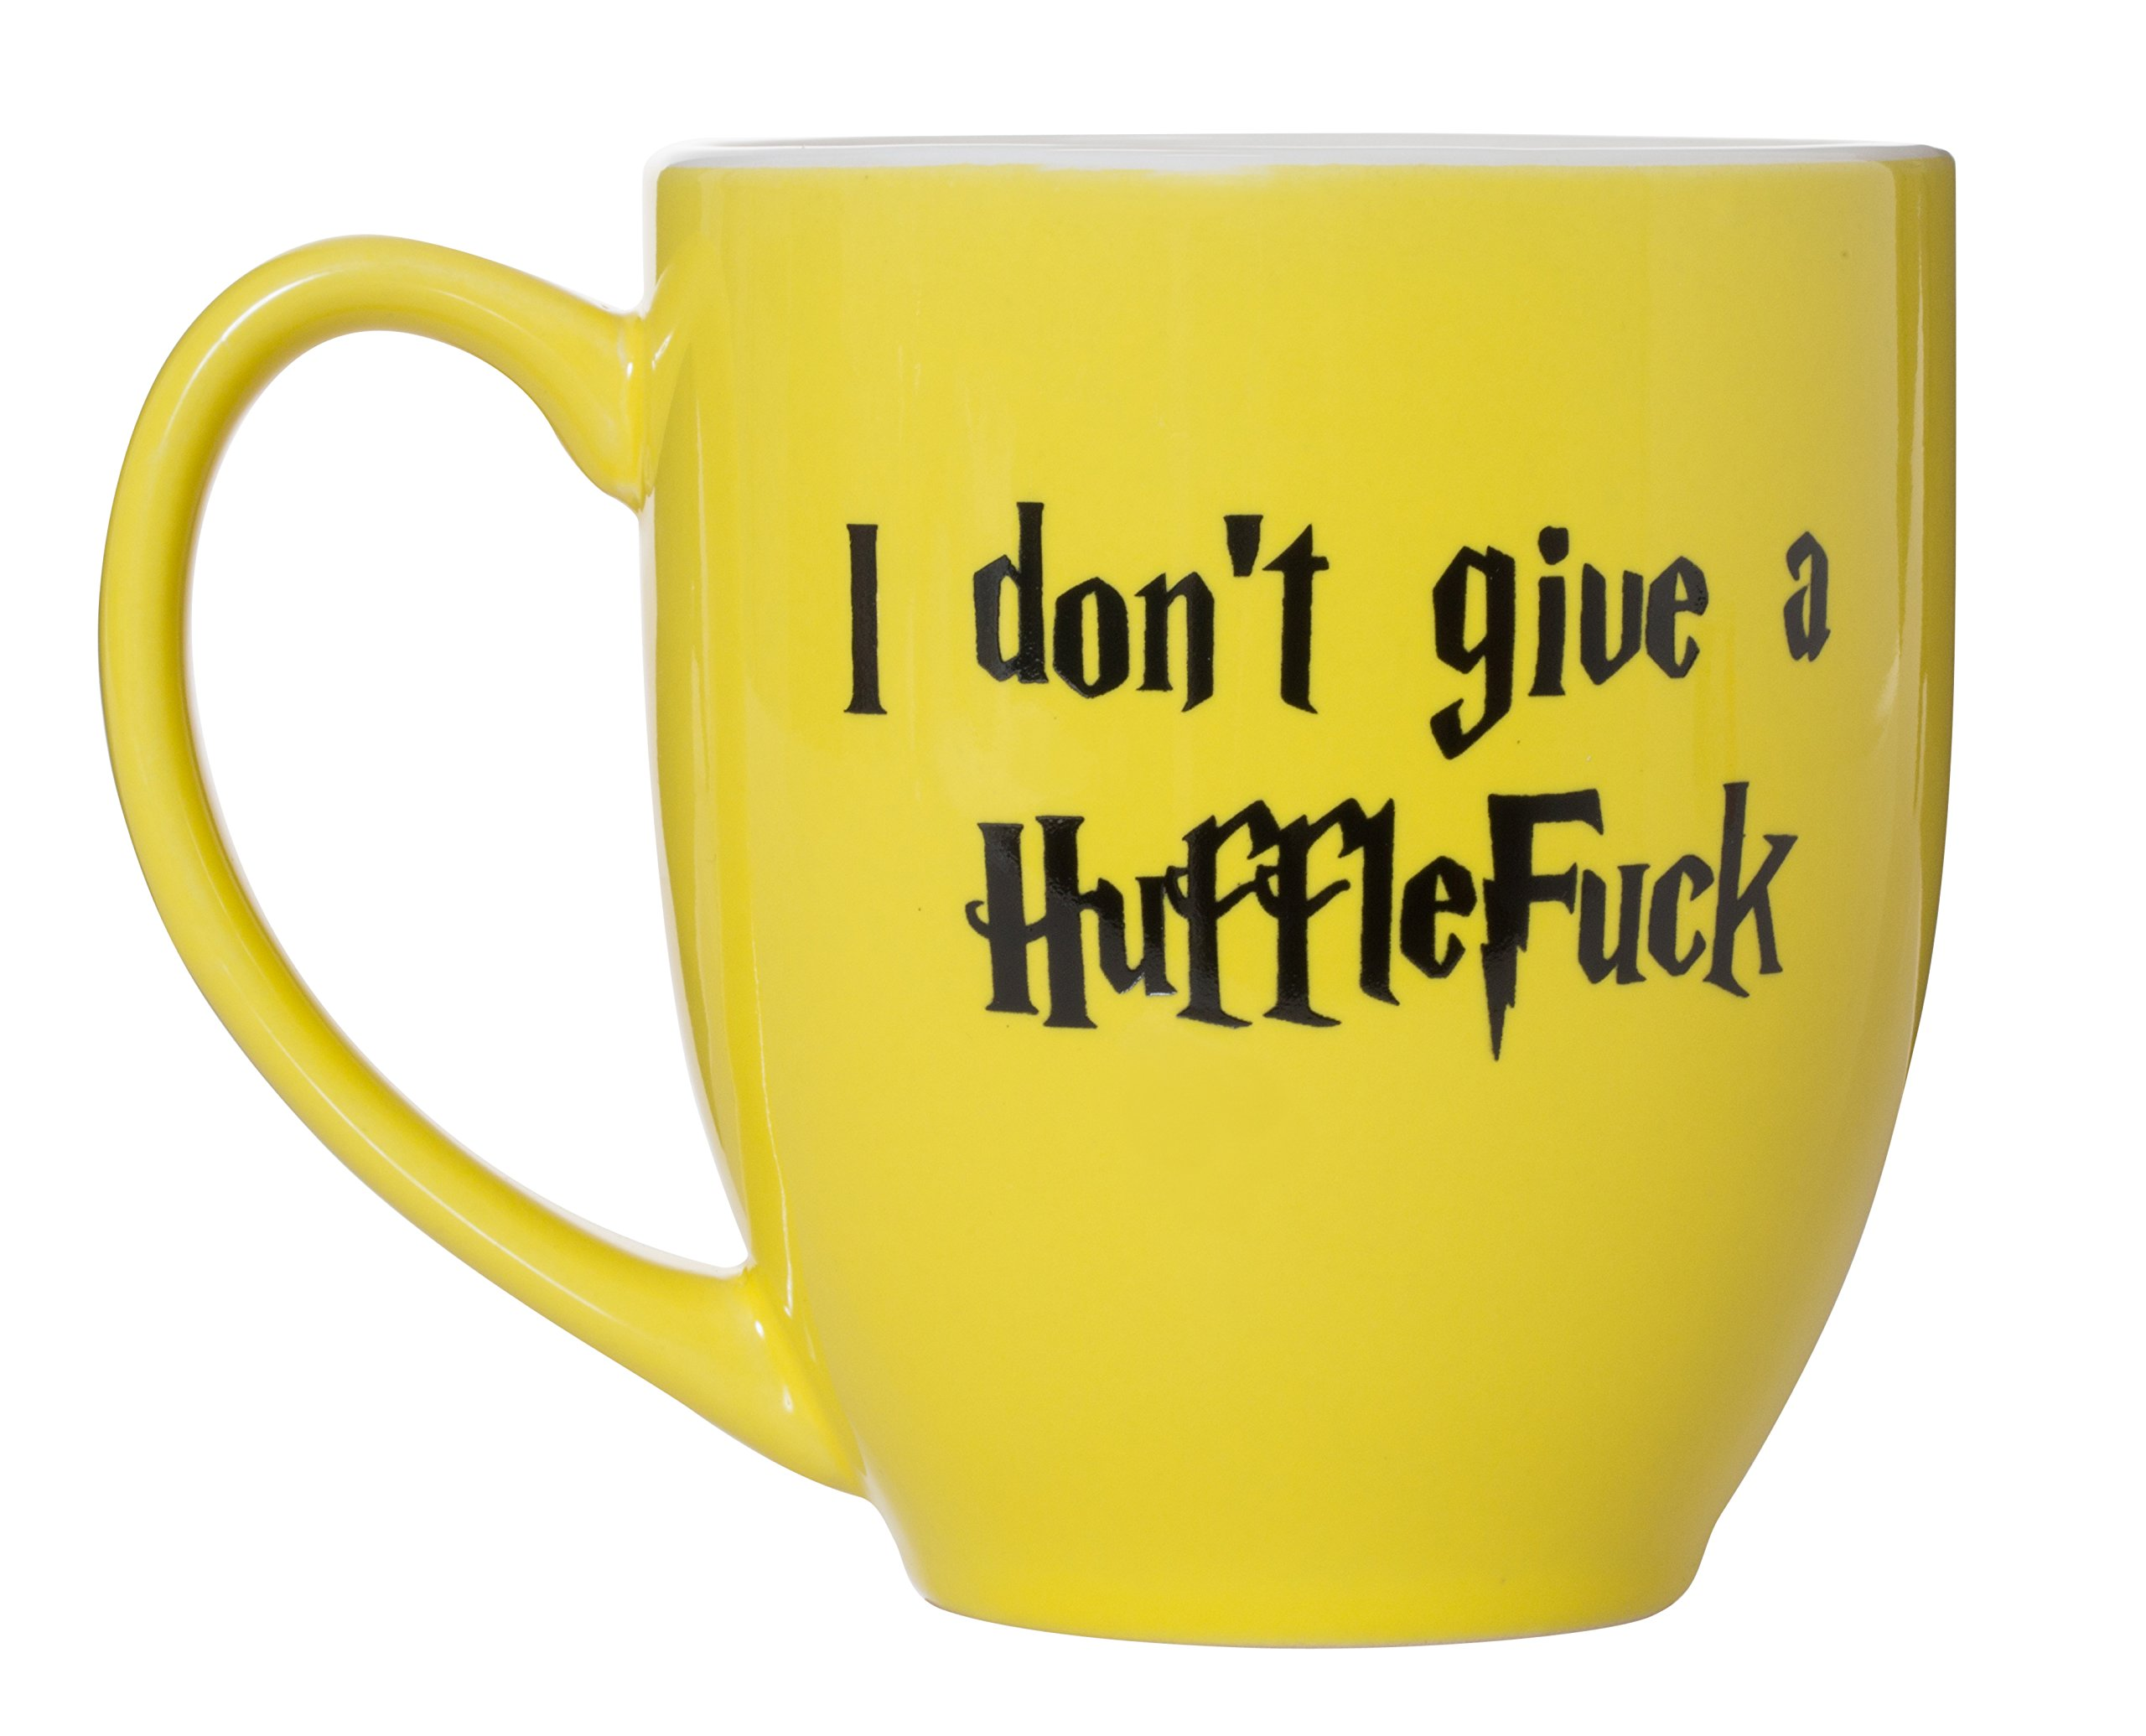 I Don't Give A HuffleFuck - 15oz Bistro Deluxe Double-Sided Coffee Tea Mug (HuffleFuck)